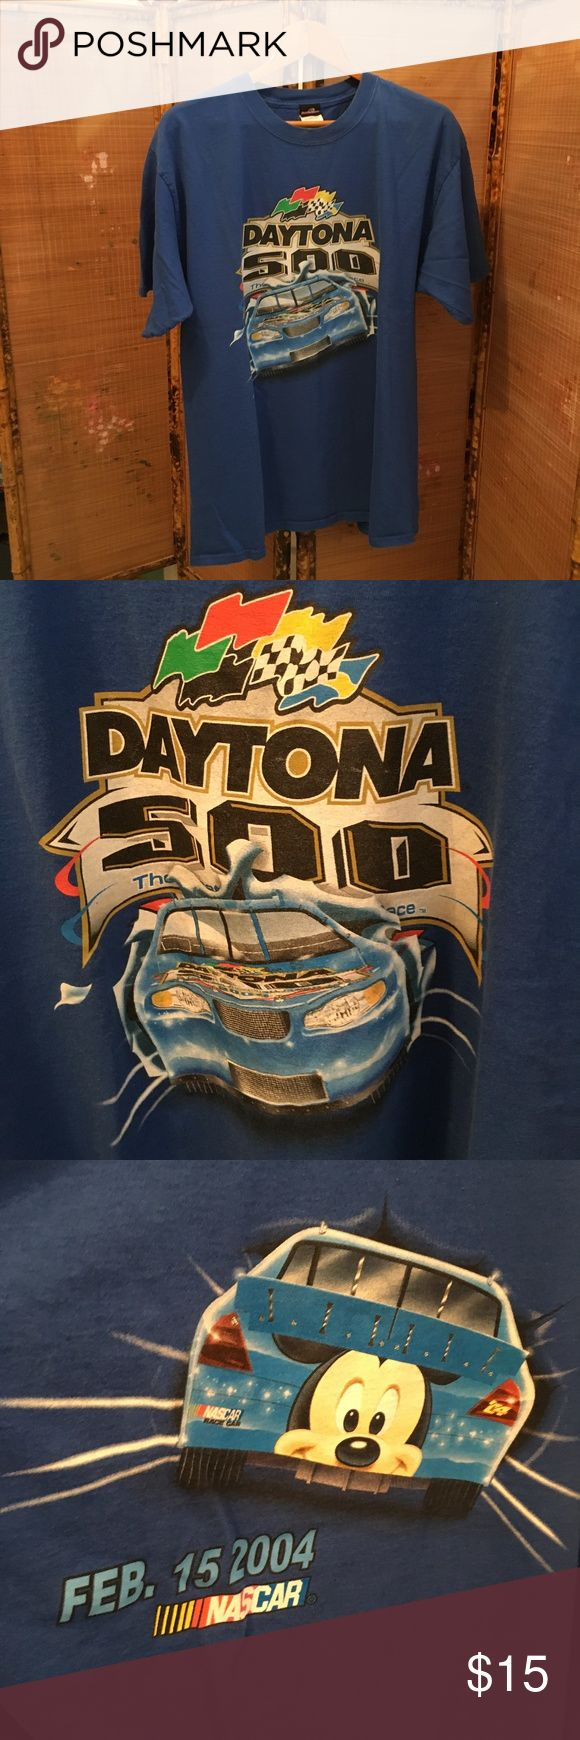 NASCAR 2004 short sleeve tee shirt GUC NASCAR 100% cotton blue 2004 Daytona 500 pace car tee shirt. Front has red, yellow, green, black, and checkered flags above blue car. Shirt back is also back of car with Mickey's head, race date of FEB. 15, 2004, and NASCAR logo. All items come from a smoke free home. Measurements available upon request. All questions are welcome. Daytona Shirts Tees - Short Sleeve